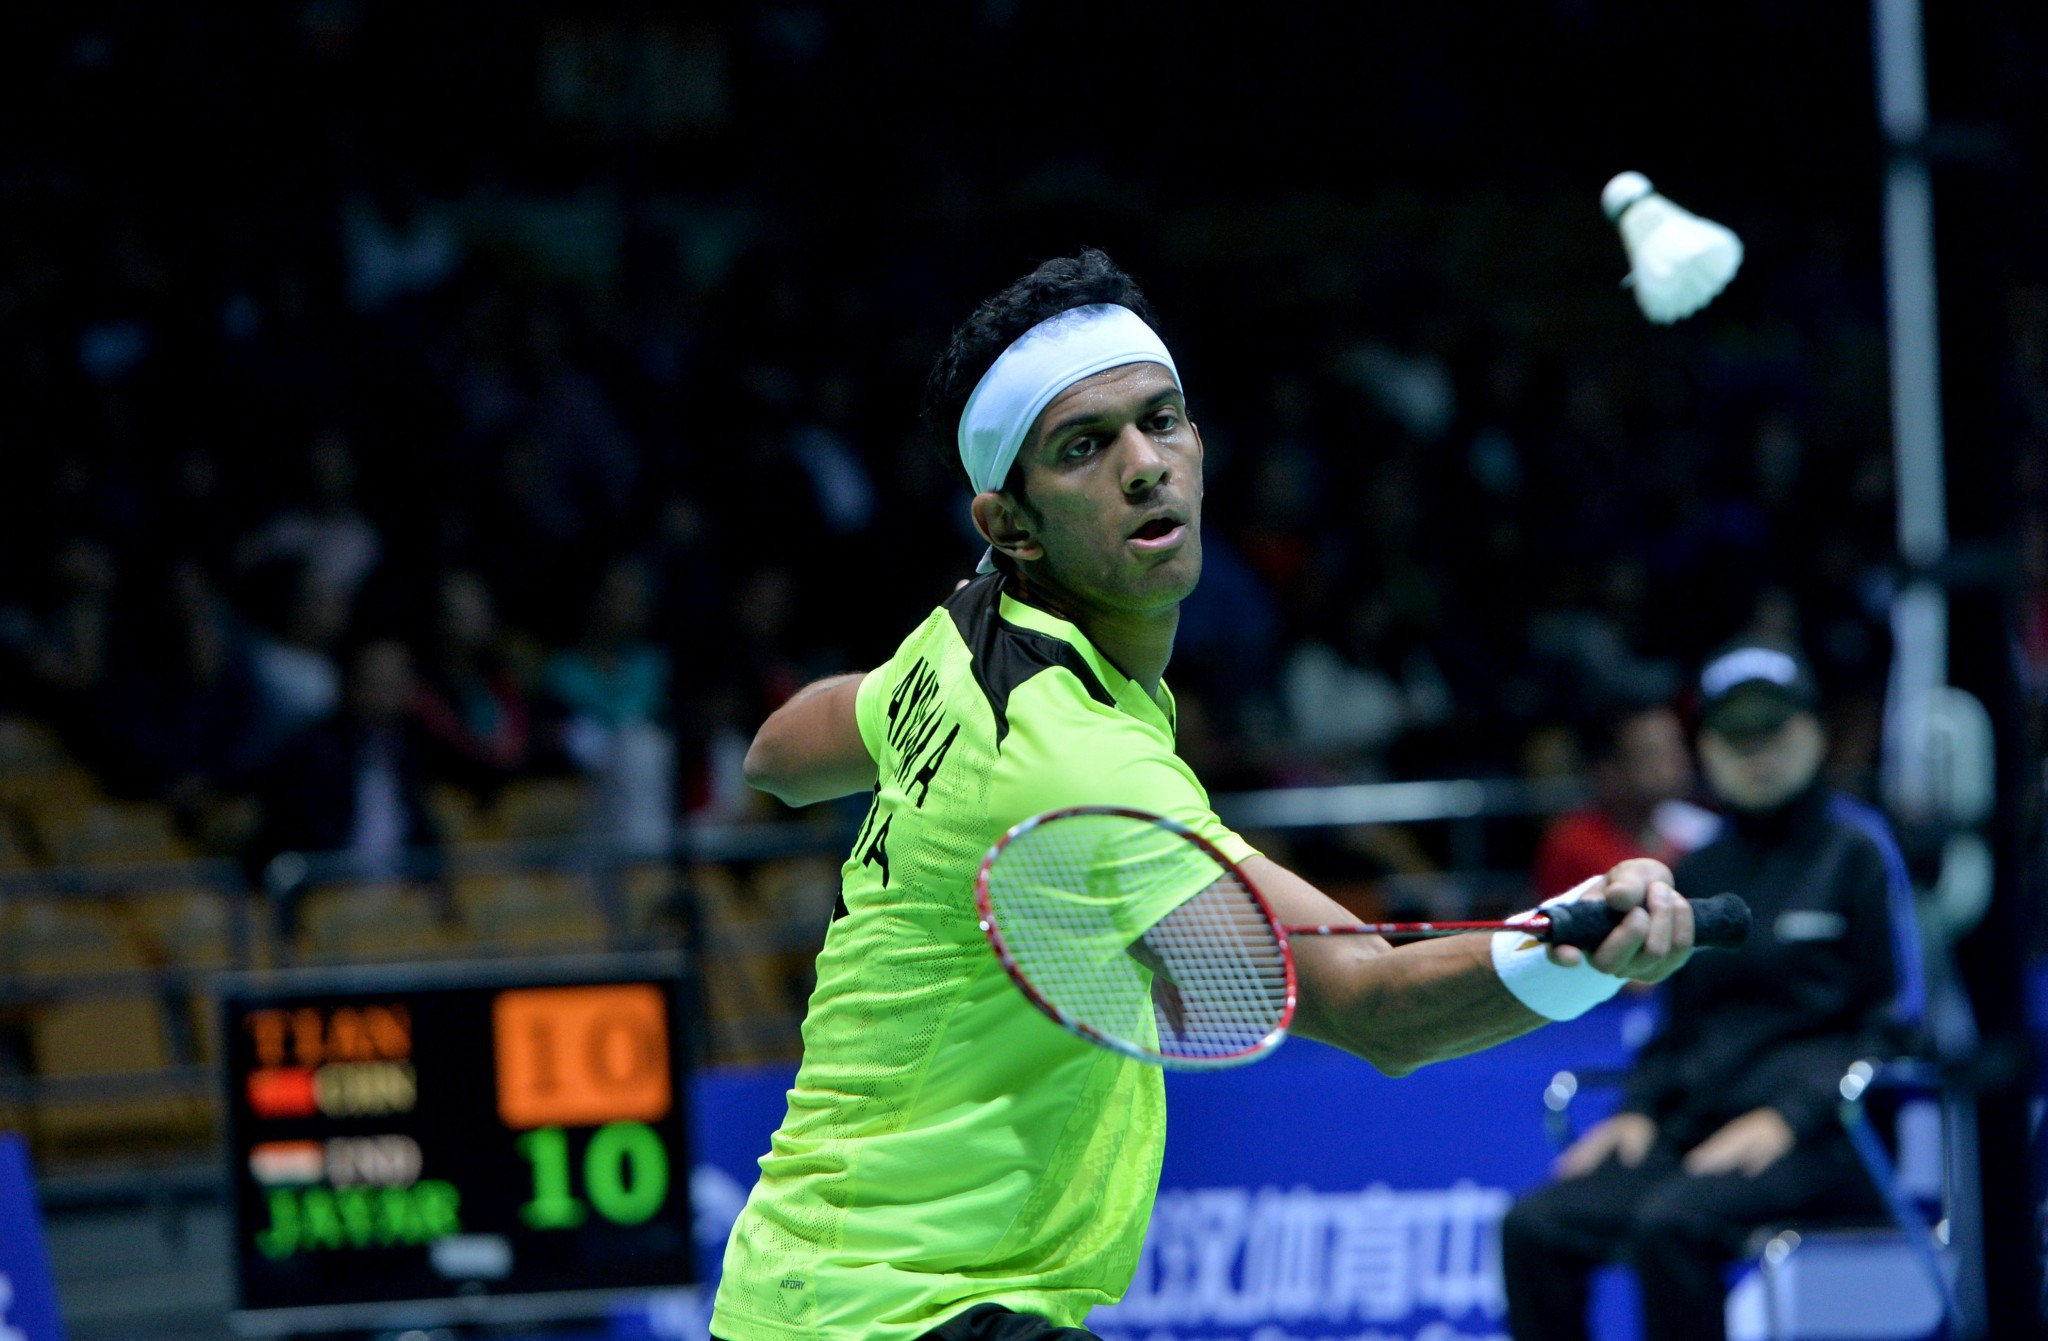 Three badminton players withdraw from SaarLorLux Open after positive COVID-19 test